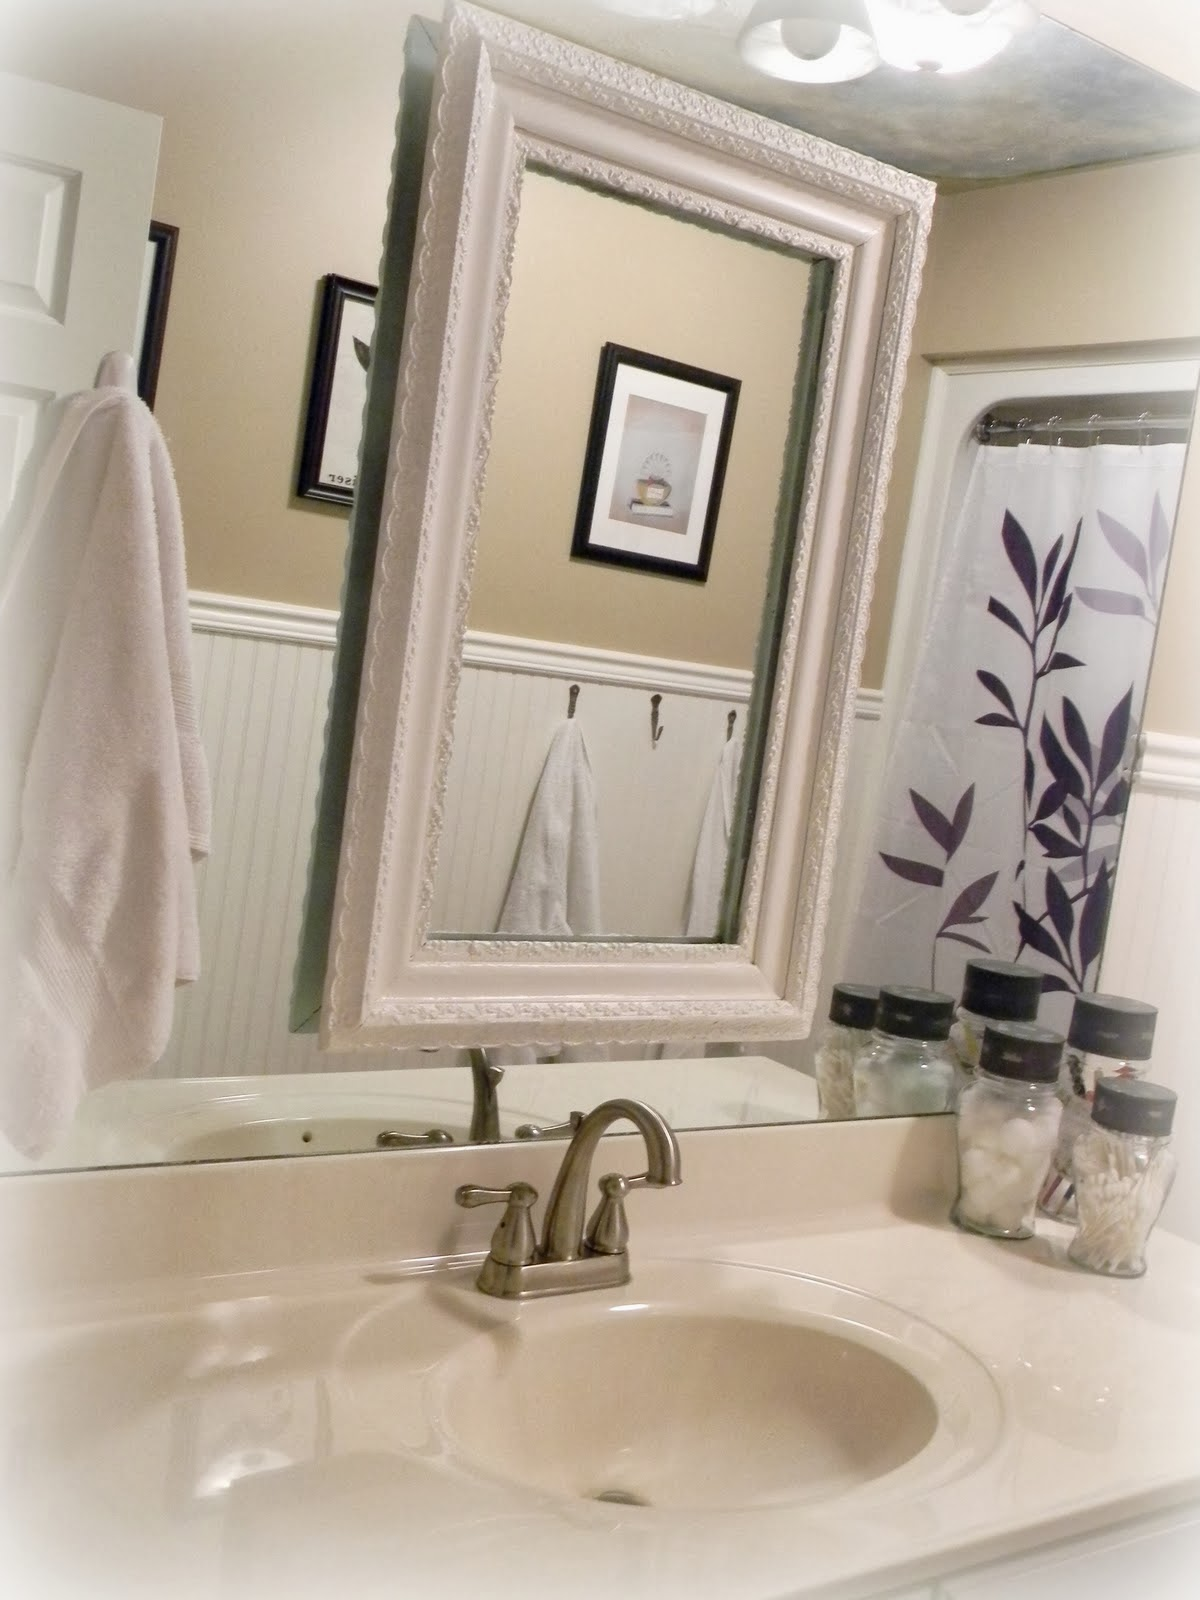 Updated Guest Bathroom Reveal!